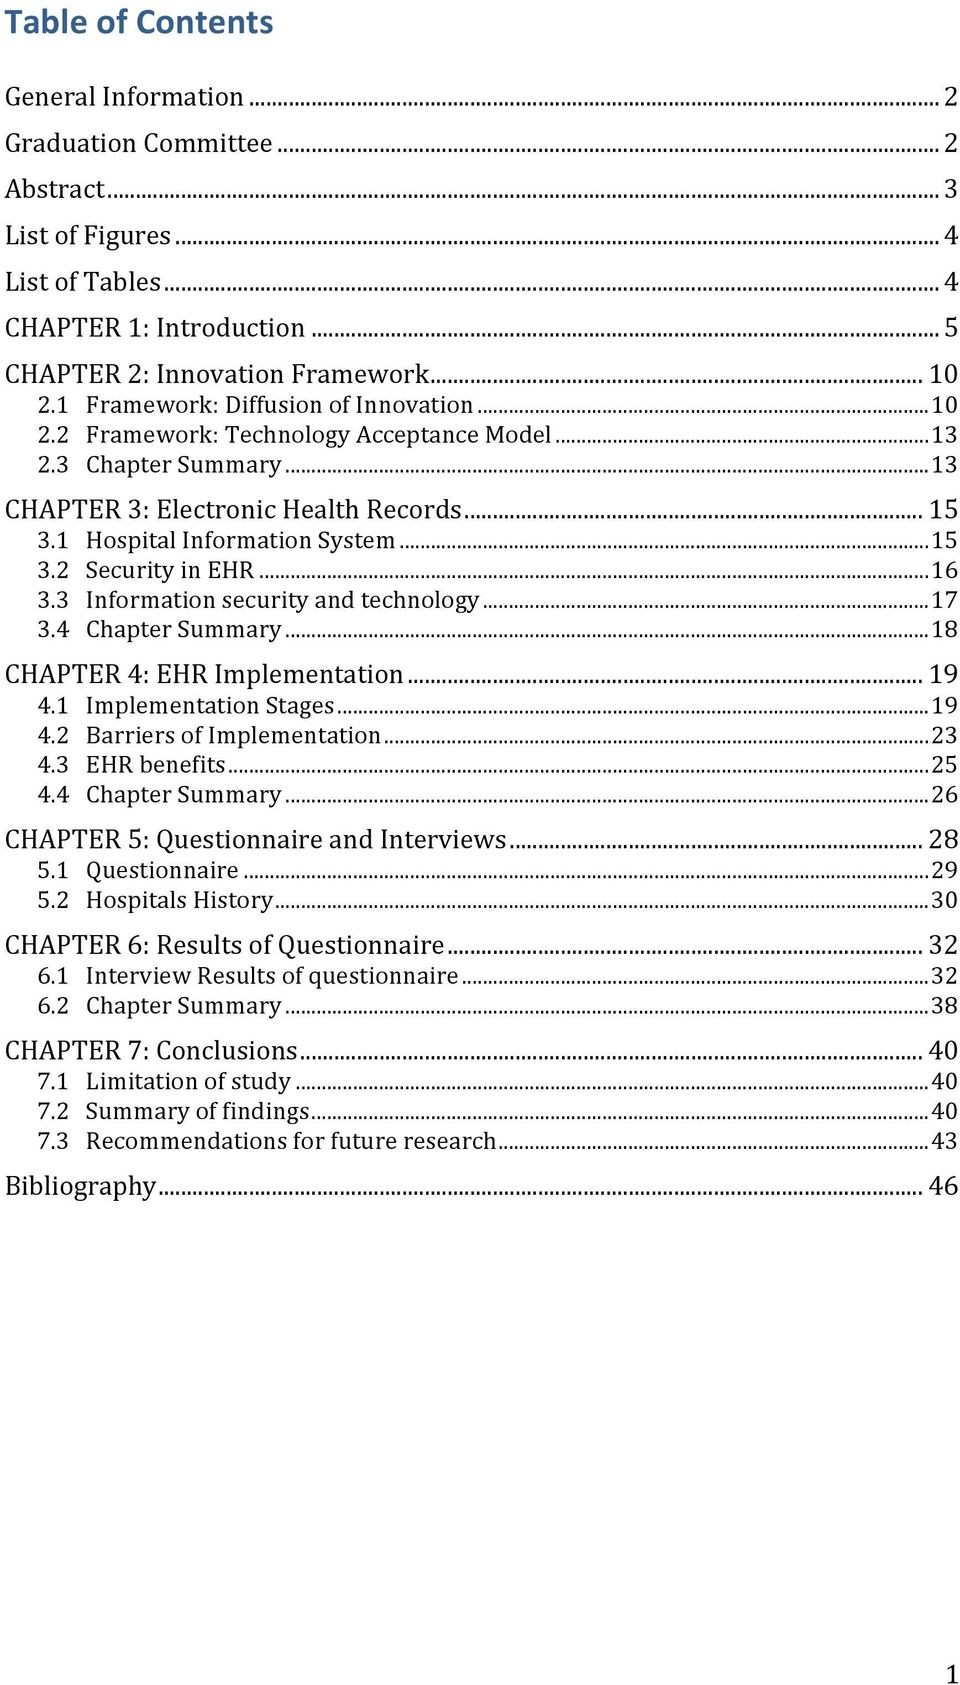 .. 16 3.3 Information security and technology... 17 3.4 Chapter Summary... 18 CHAPTER 4: EHR Implementation... 19 4.1 Implementation Stages... 19 4.2 Barriers of Implementation... 23 4.3 EHR benefits.